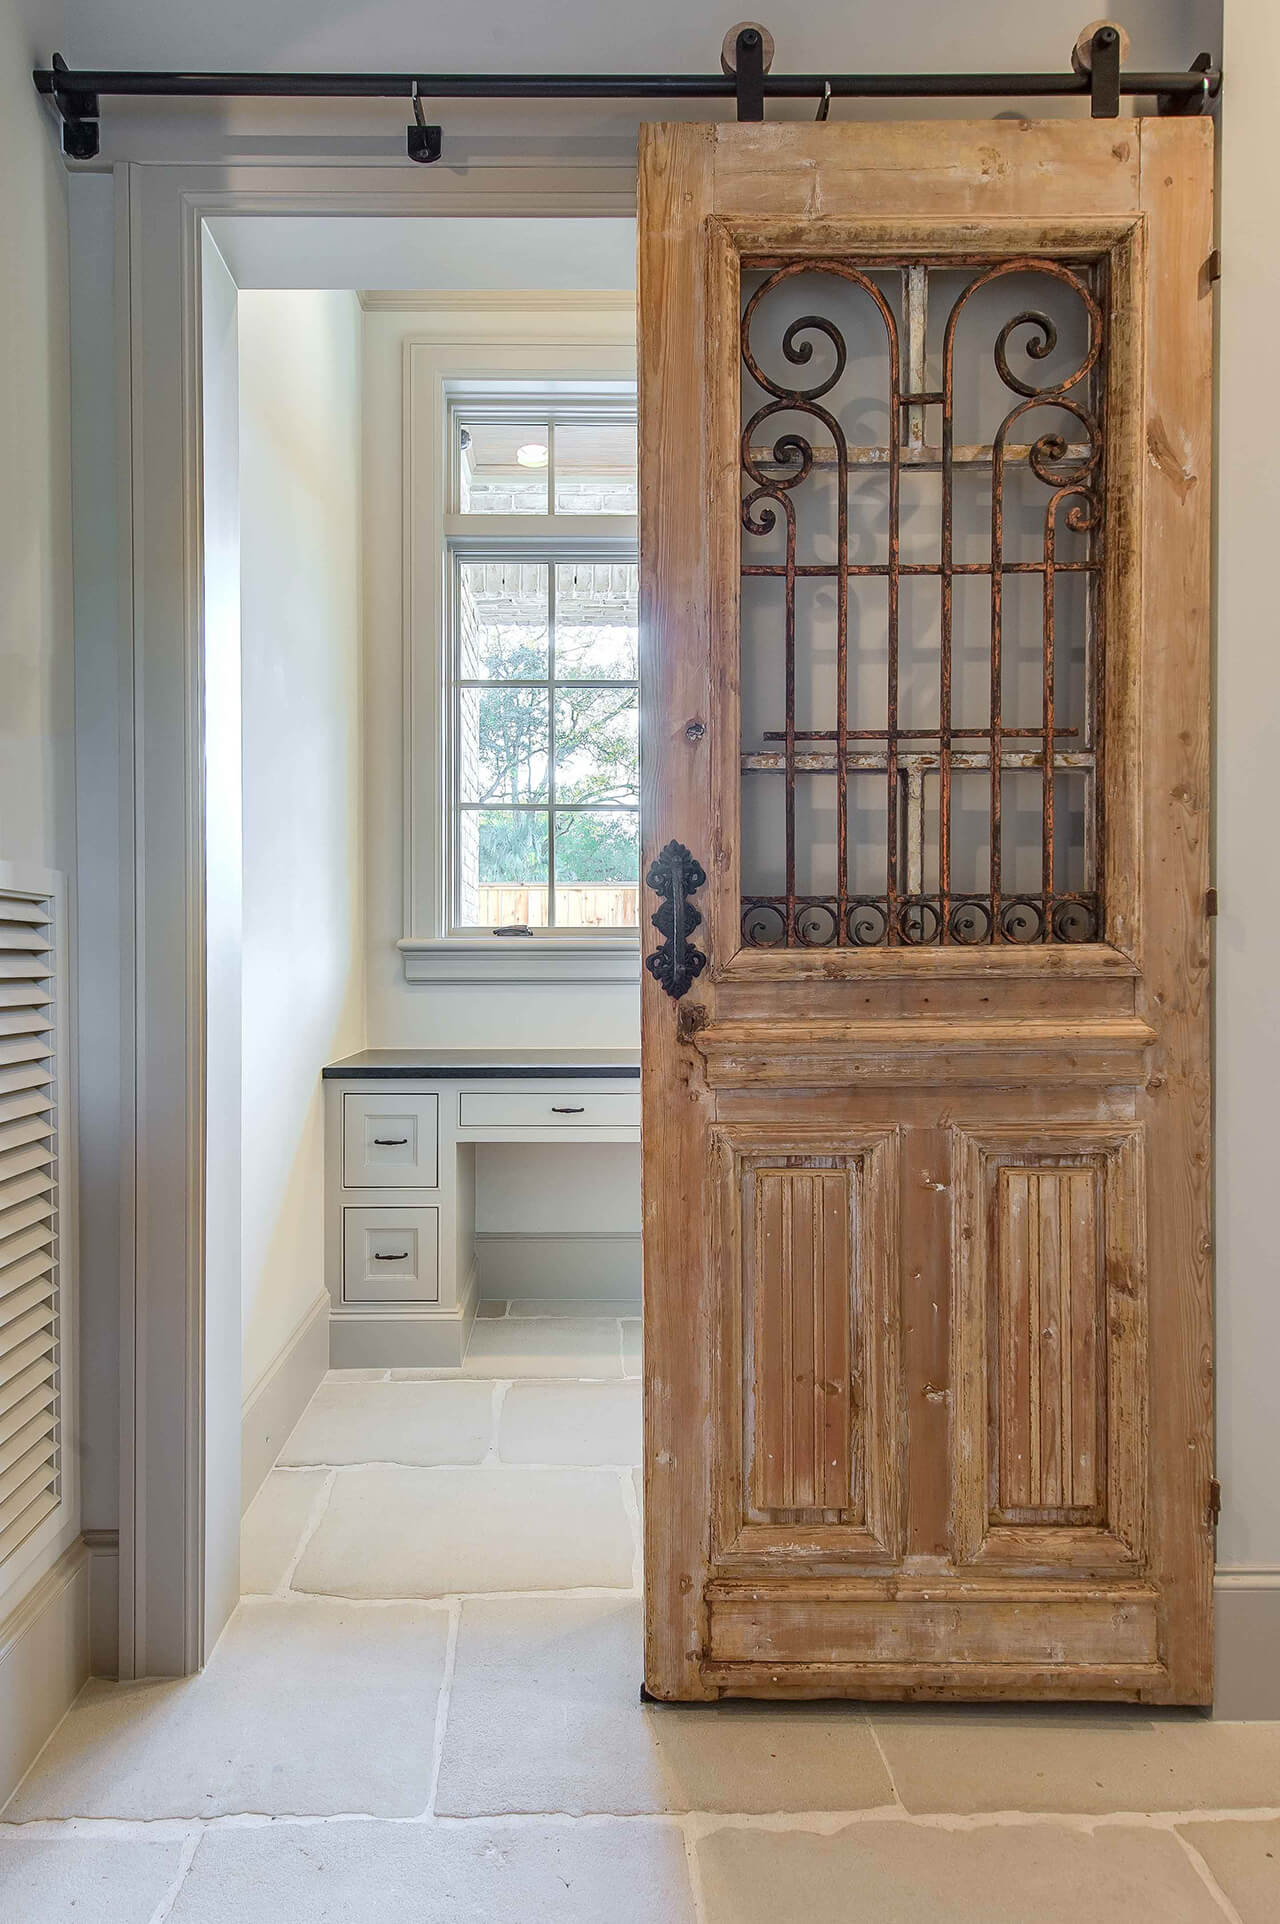 New takes on old doors 21 ideas how to repurpose old for Antique door decoration